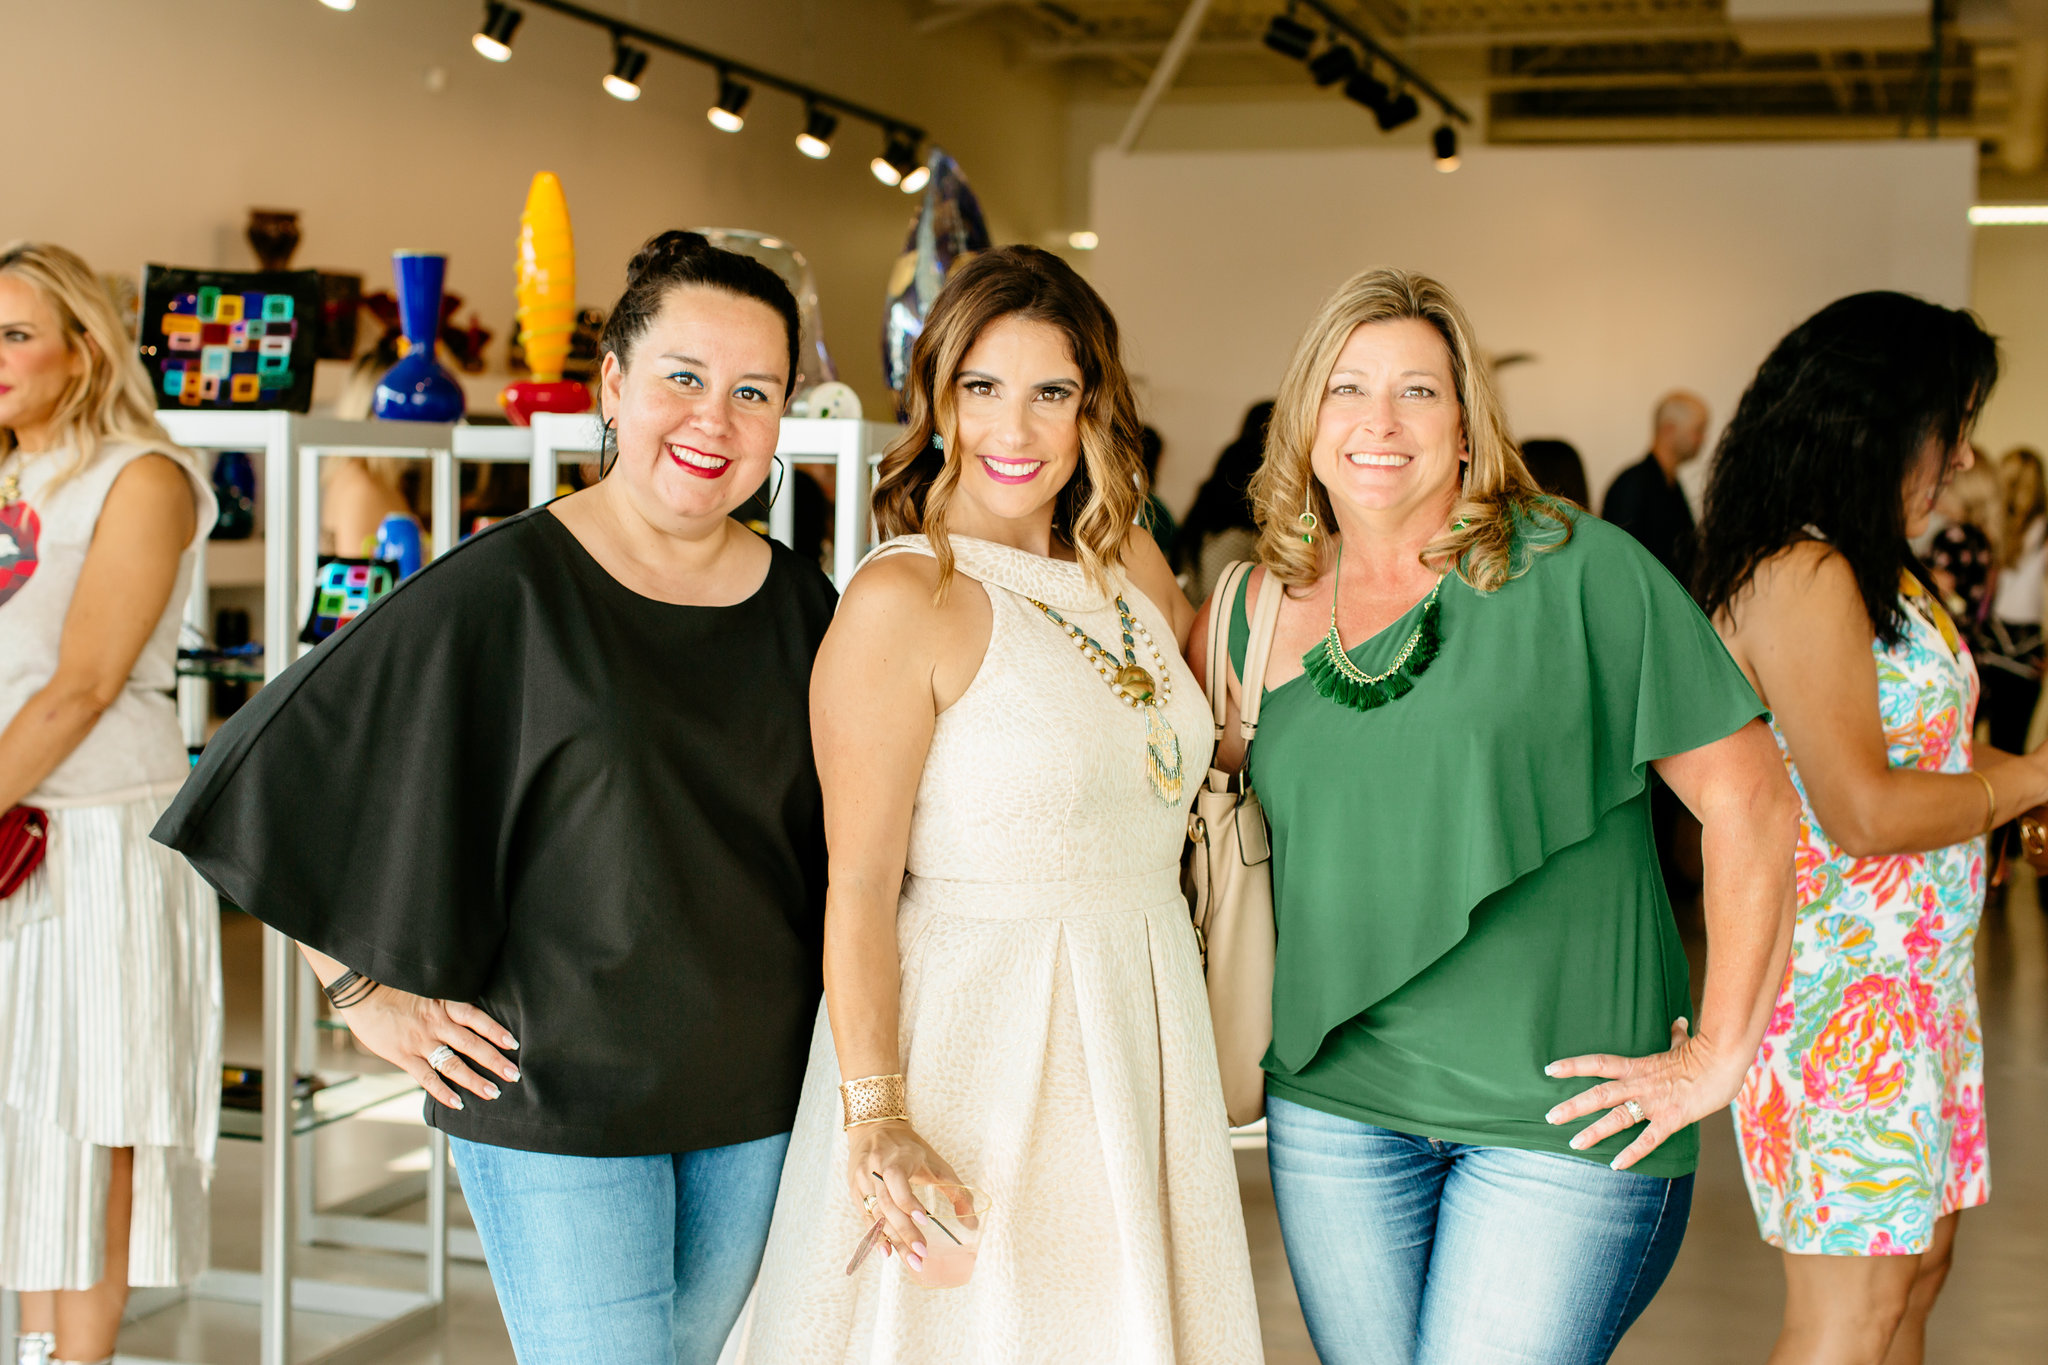 Alexa-Vossler-Photo_Dallas-Event-Photographer_Brite-Bar-Beauty-2018-Lipstick-Launch-Party-81.jpg